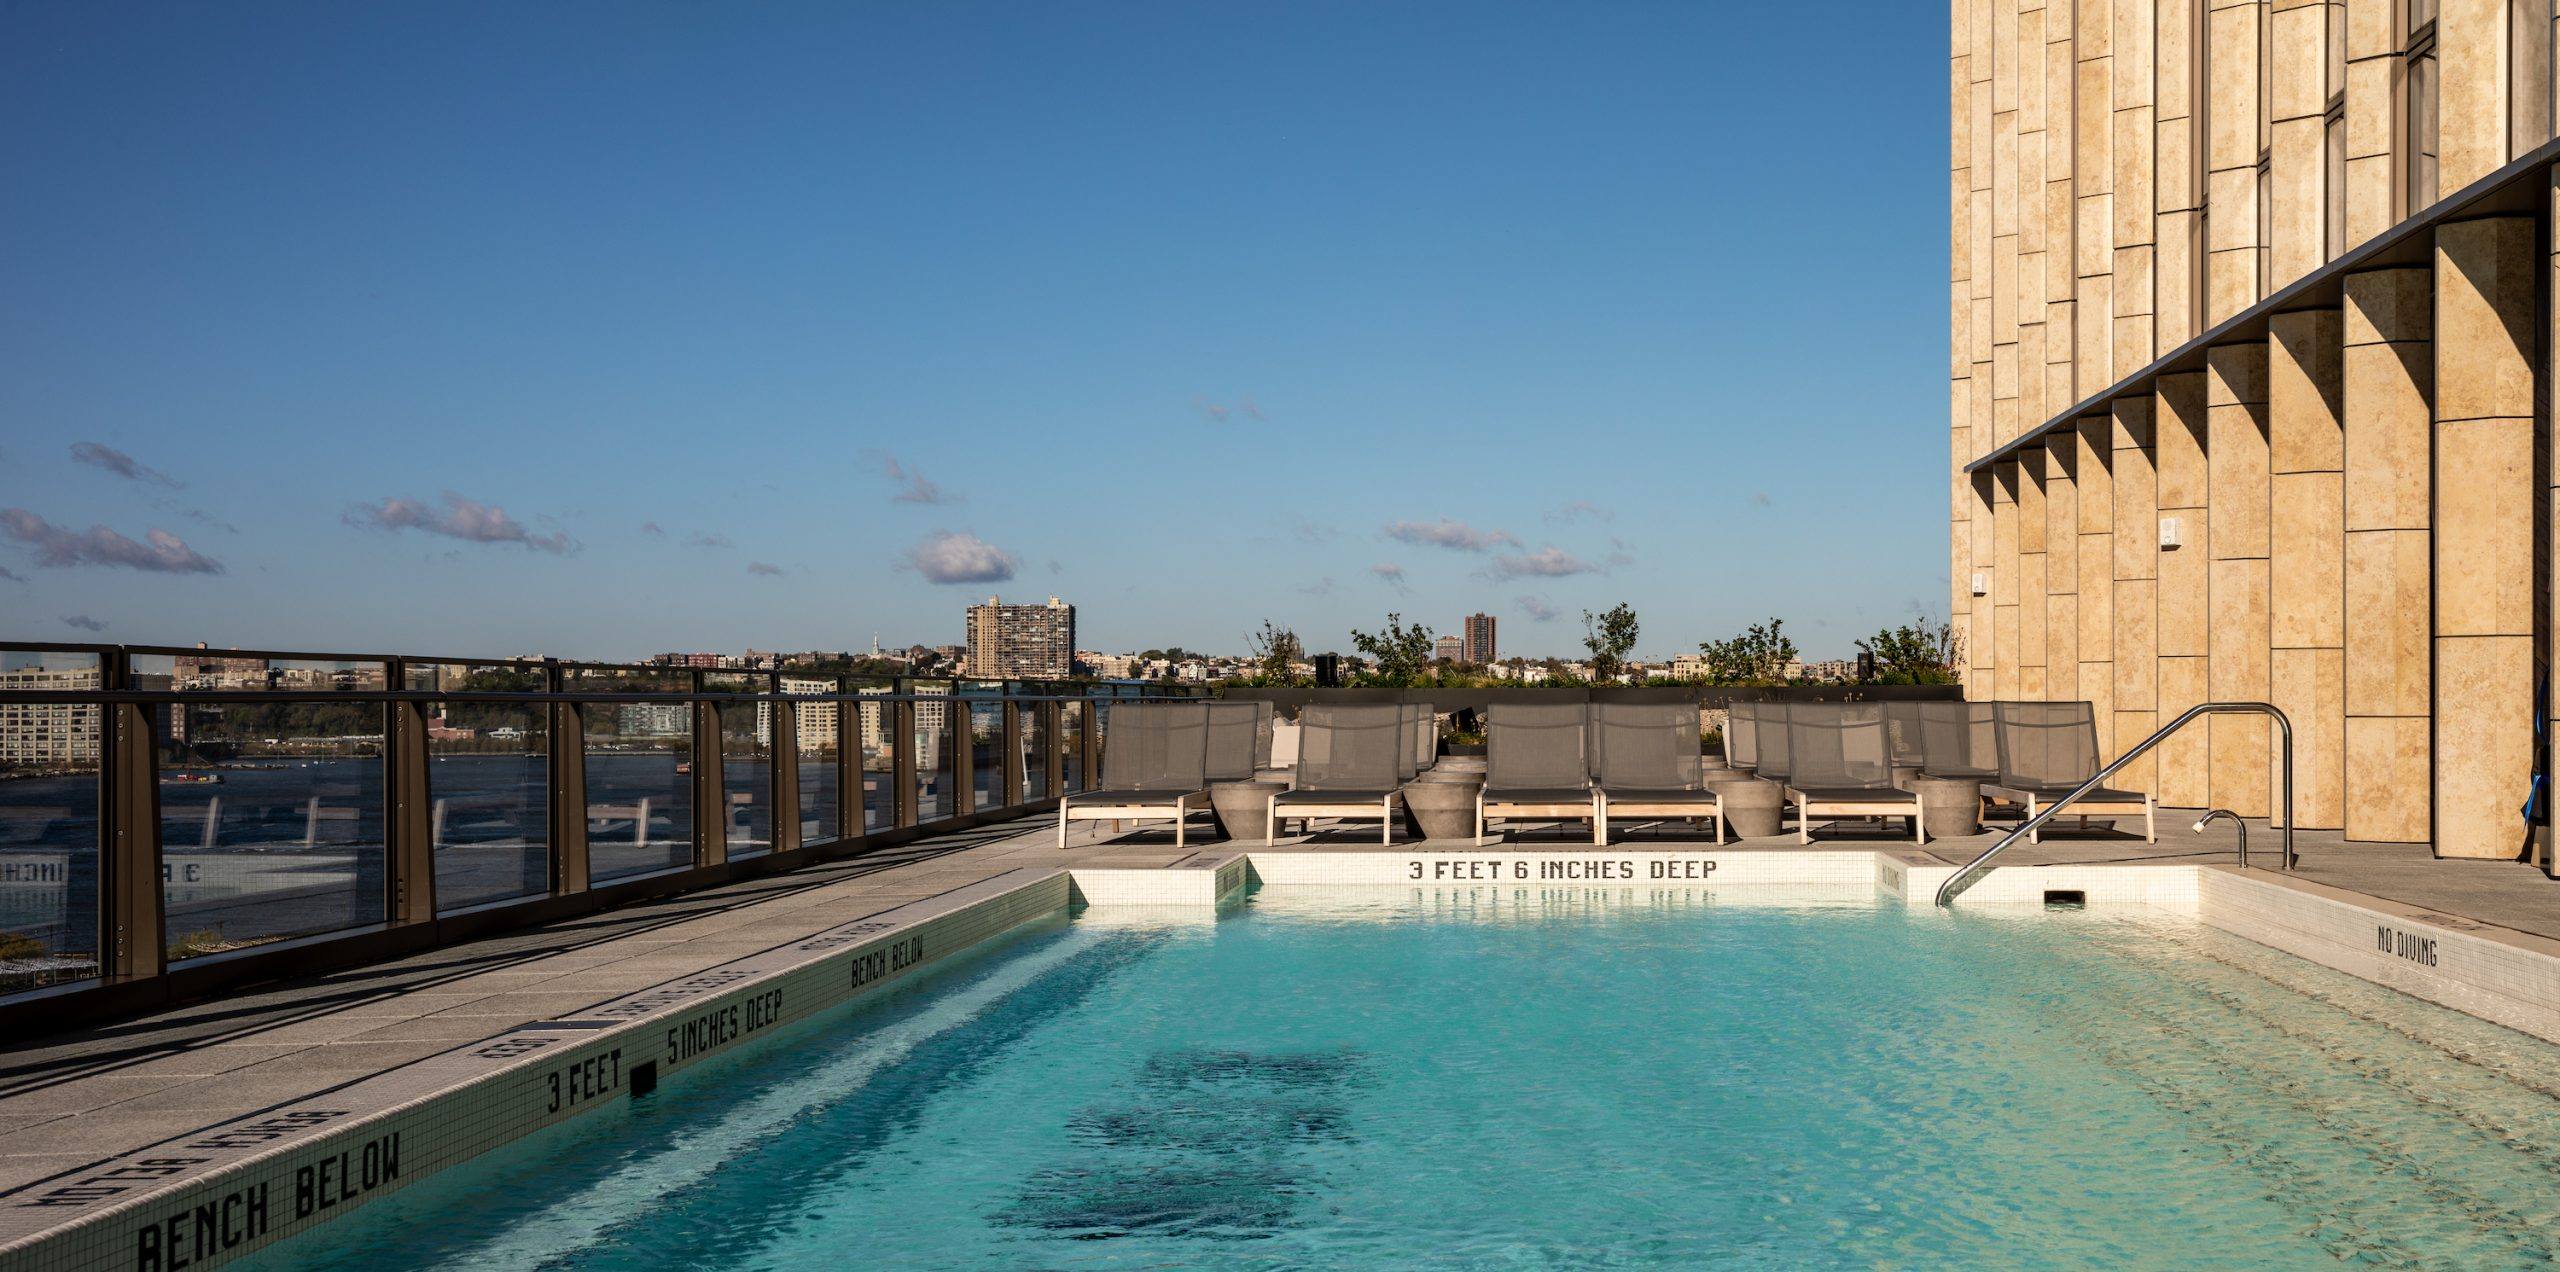 <outdoor pool and sundeck overlooking hudson river